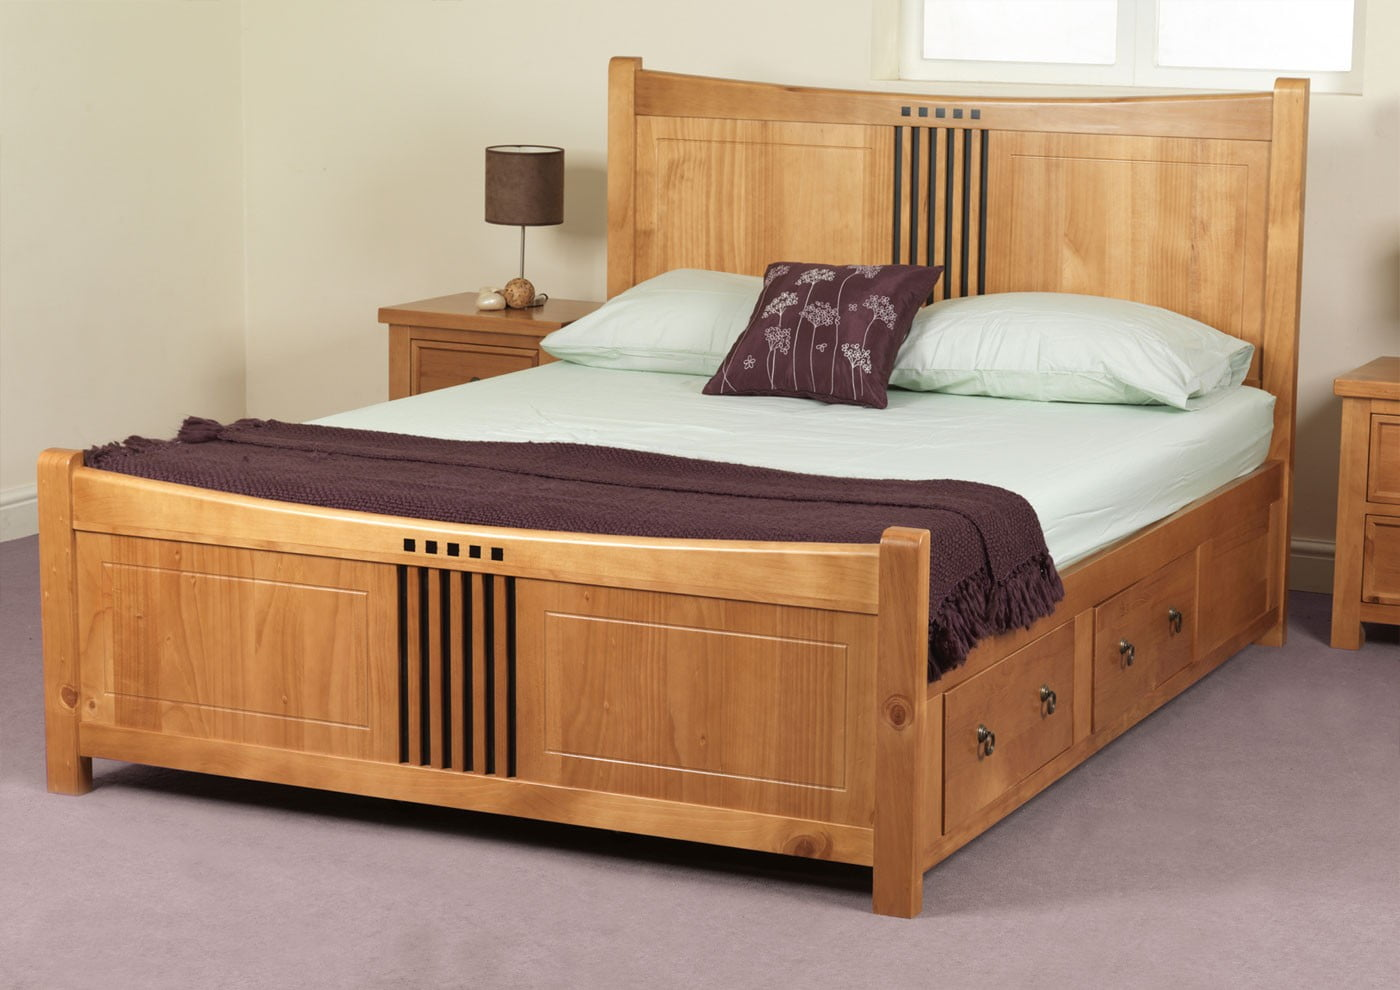 Wooden box bed designs pictures - Download